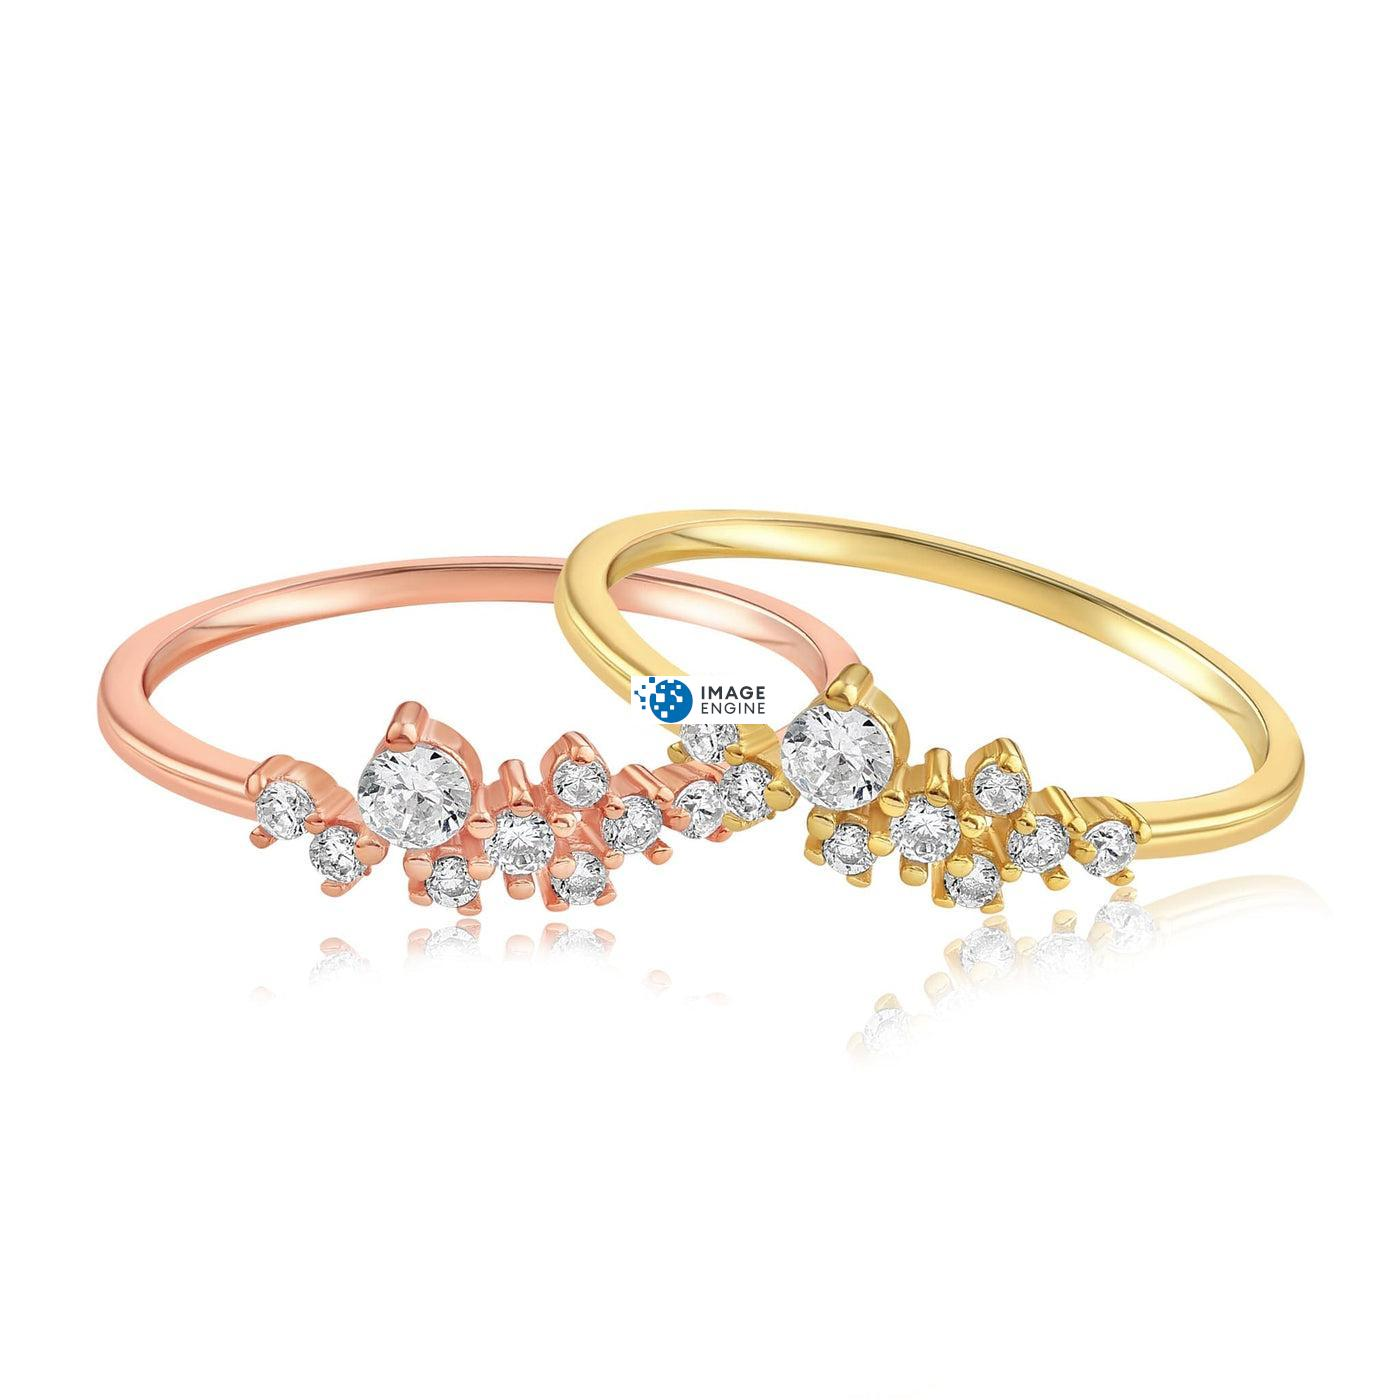 Sasha Sparkle Ring - Front View Side by Side - 18K Rose Gold Vermeil and 18K Yellow Gold Vermeil